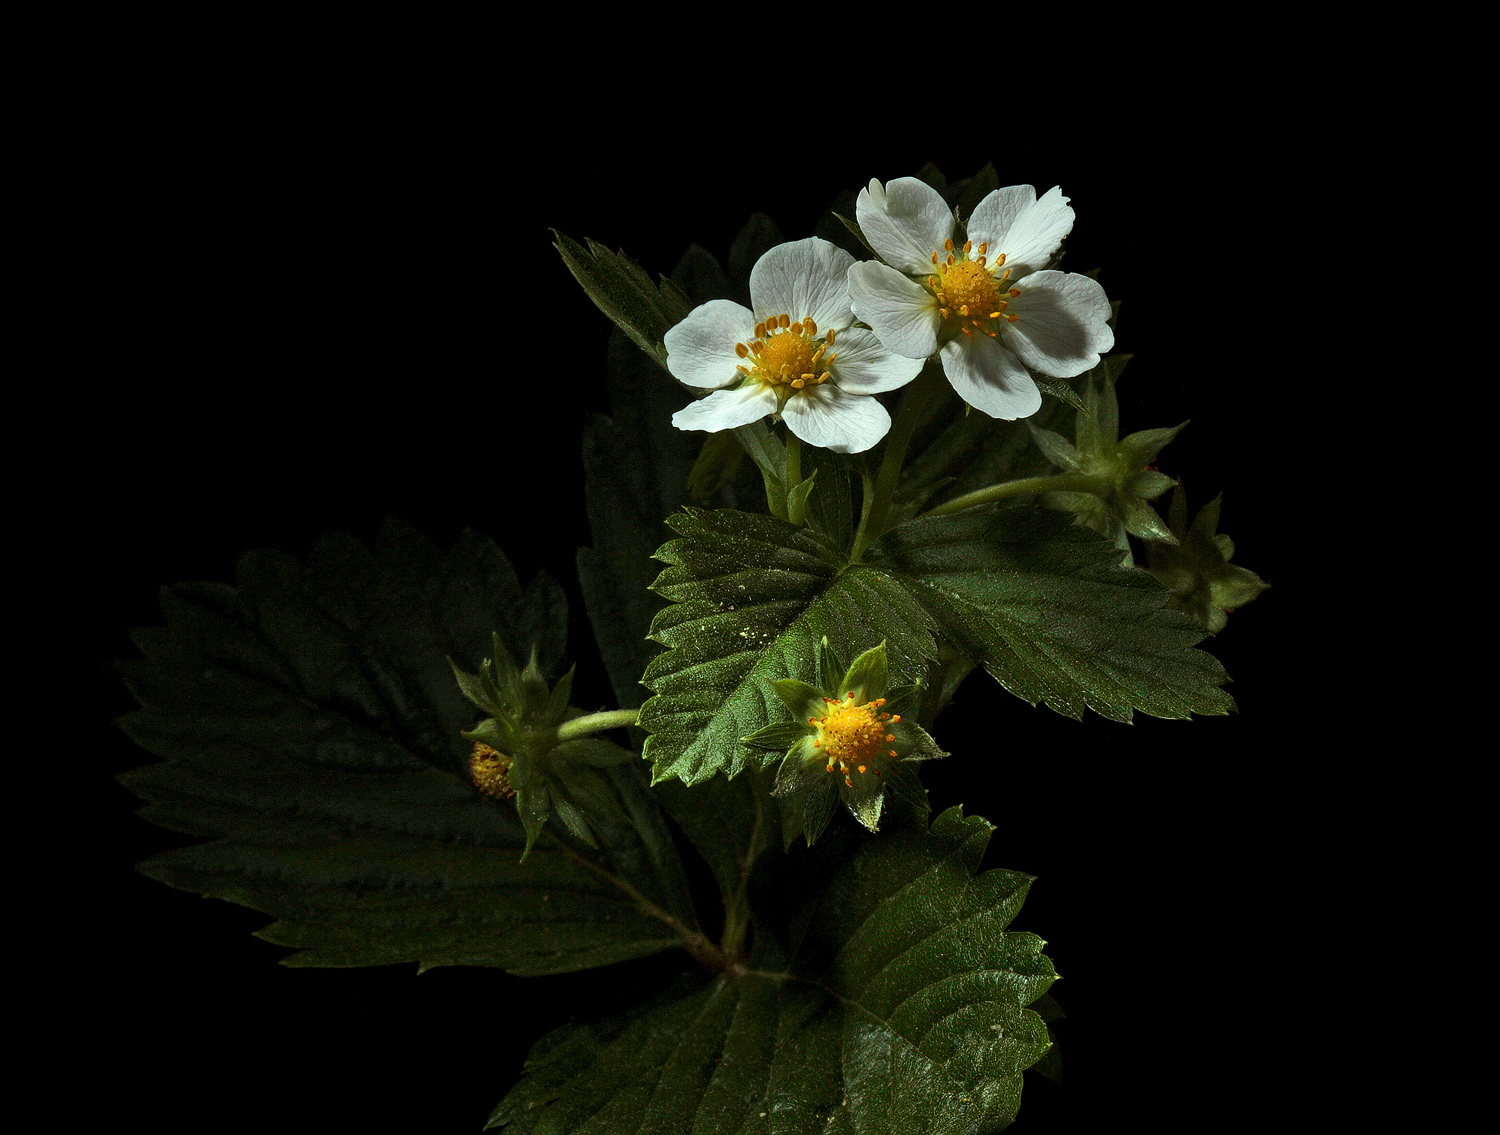 wild strawberry img aw author sava gregory and ve verena